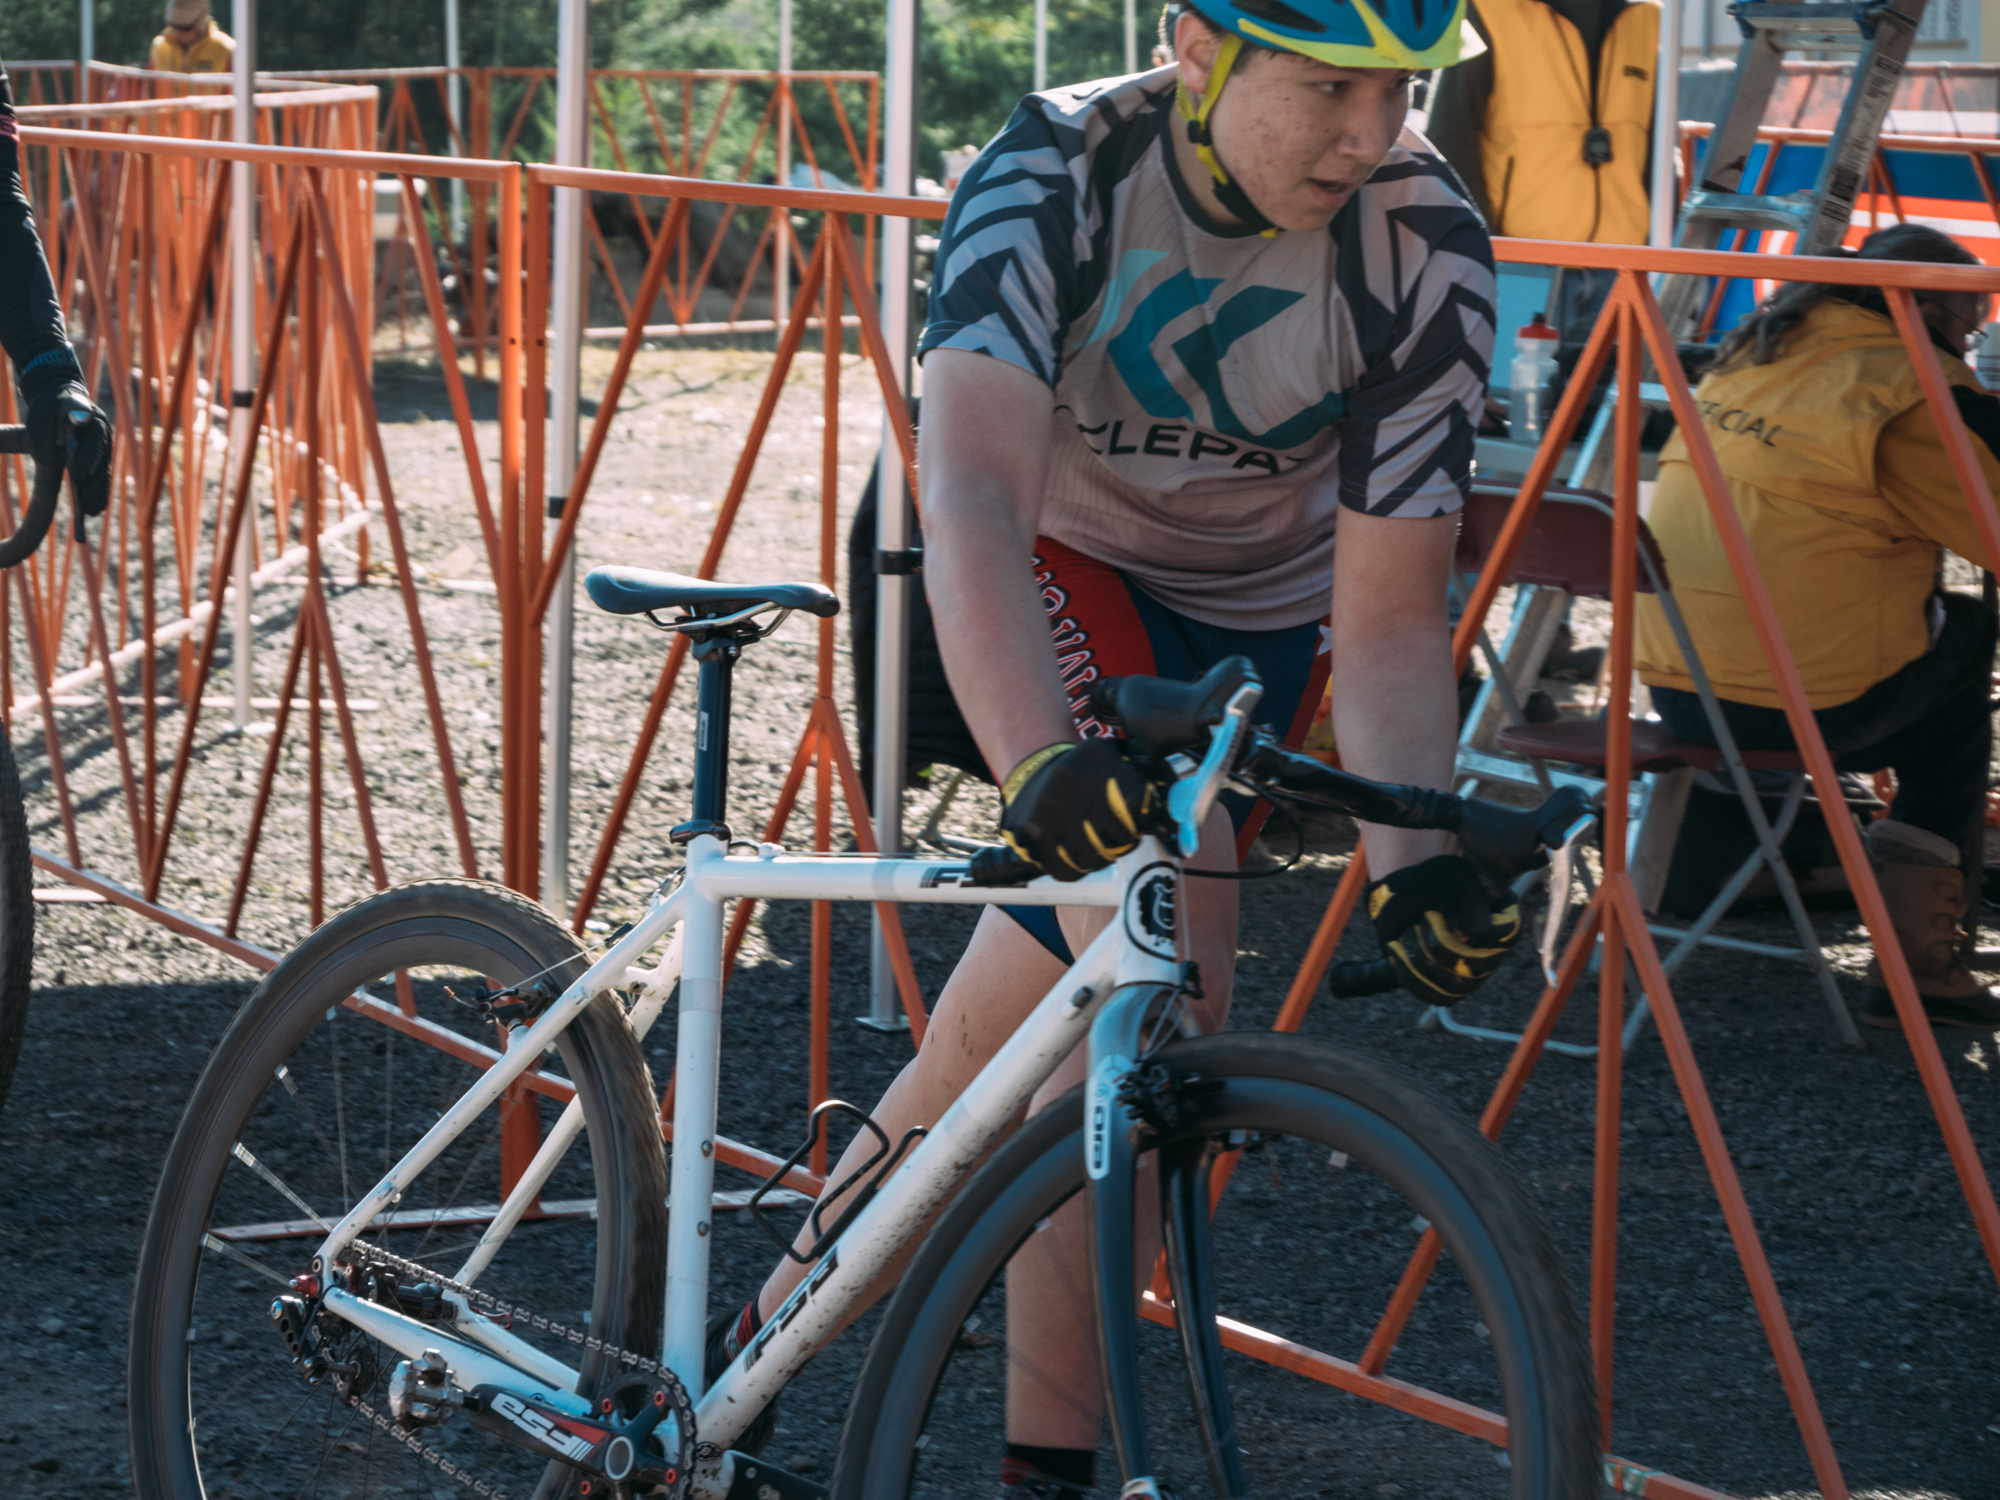 Cyclocross18_CCCX_BartonPark-mettlecycling96.jpg